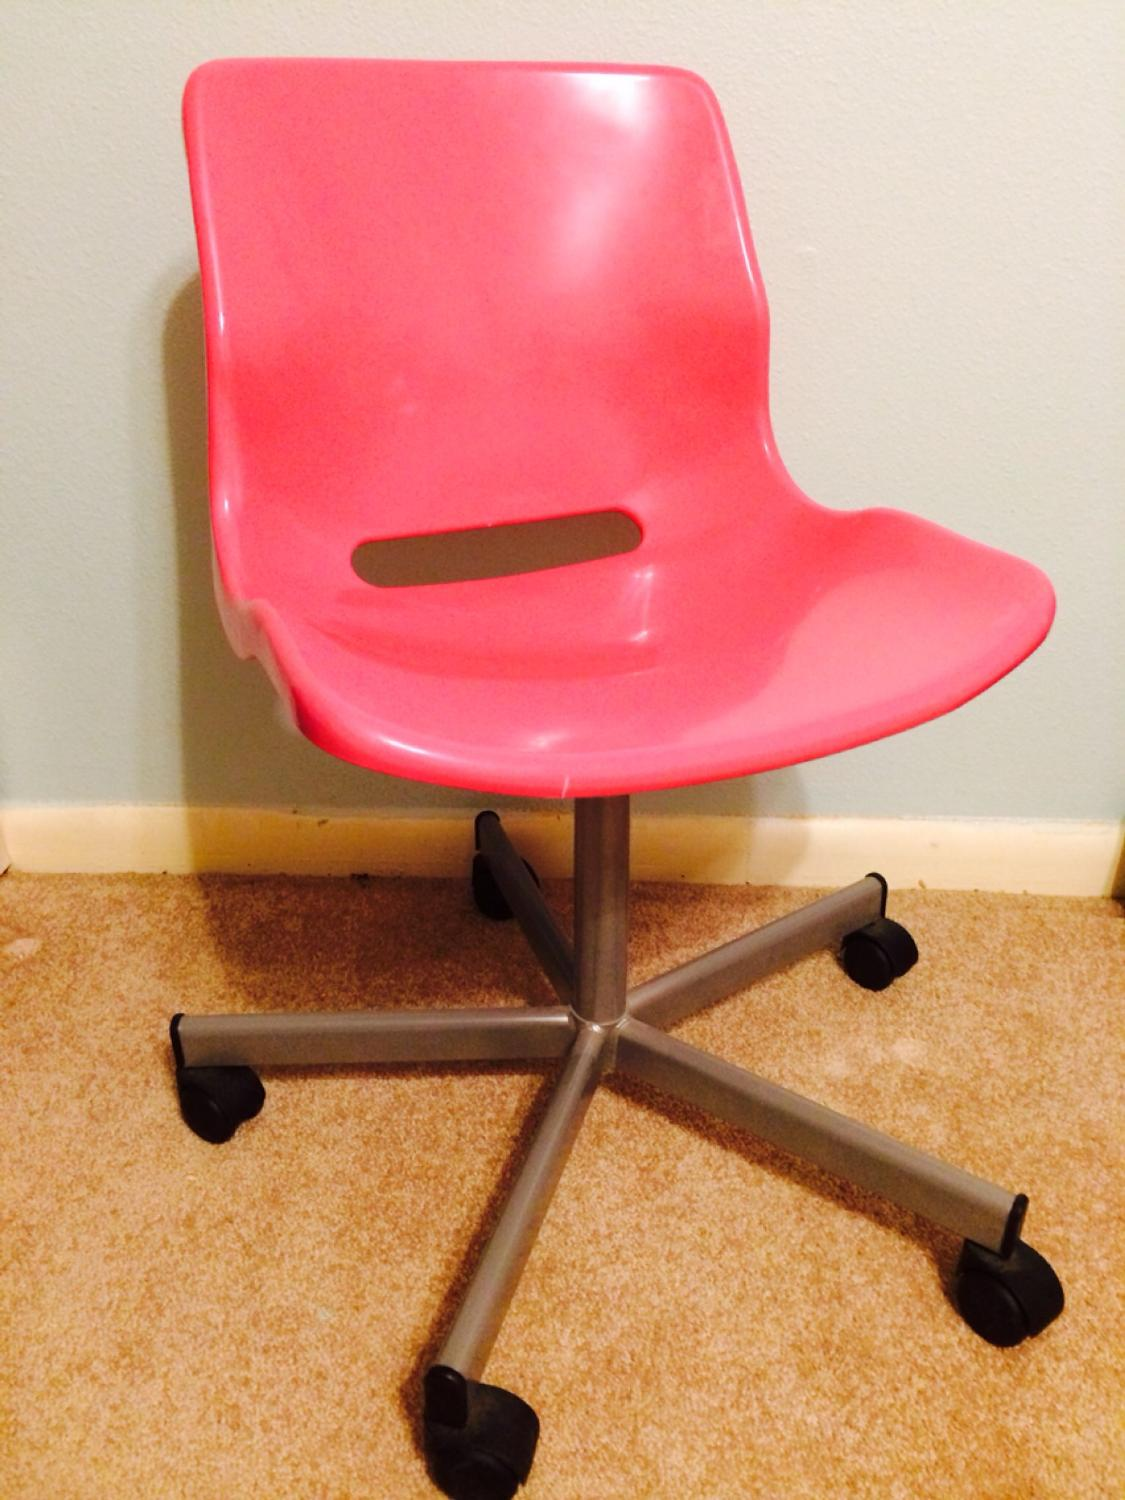 Find More Ikea Hot Pink Desk Chair Price Reduced For Sale At Up